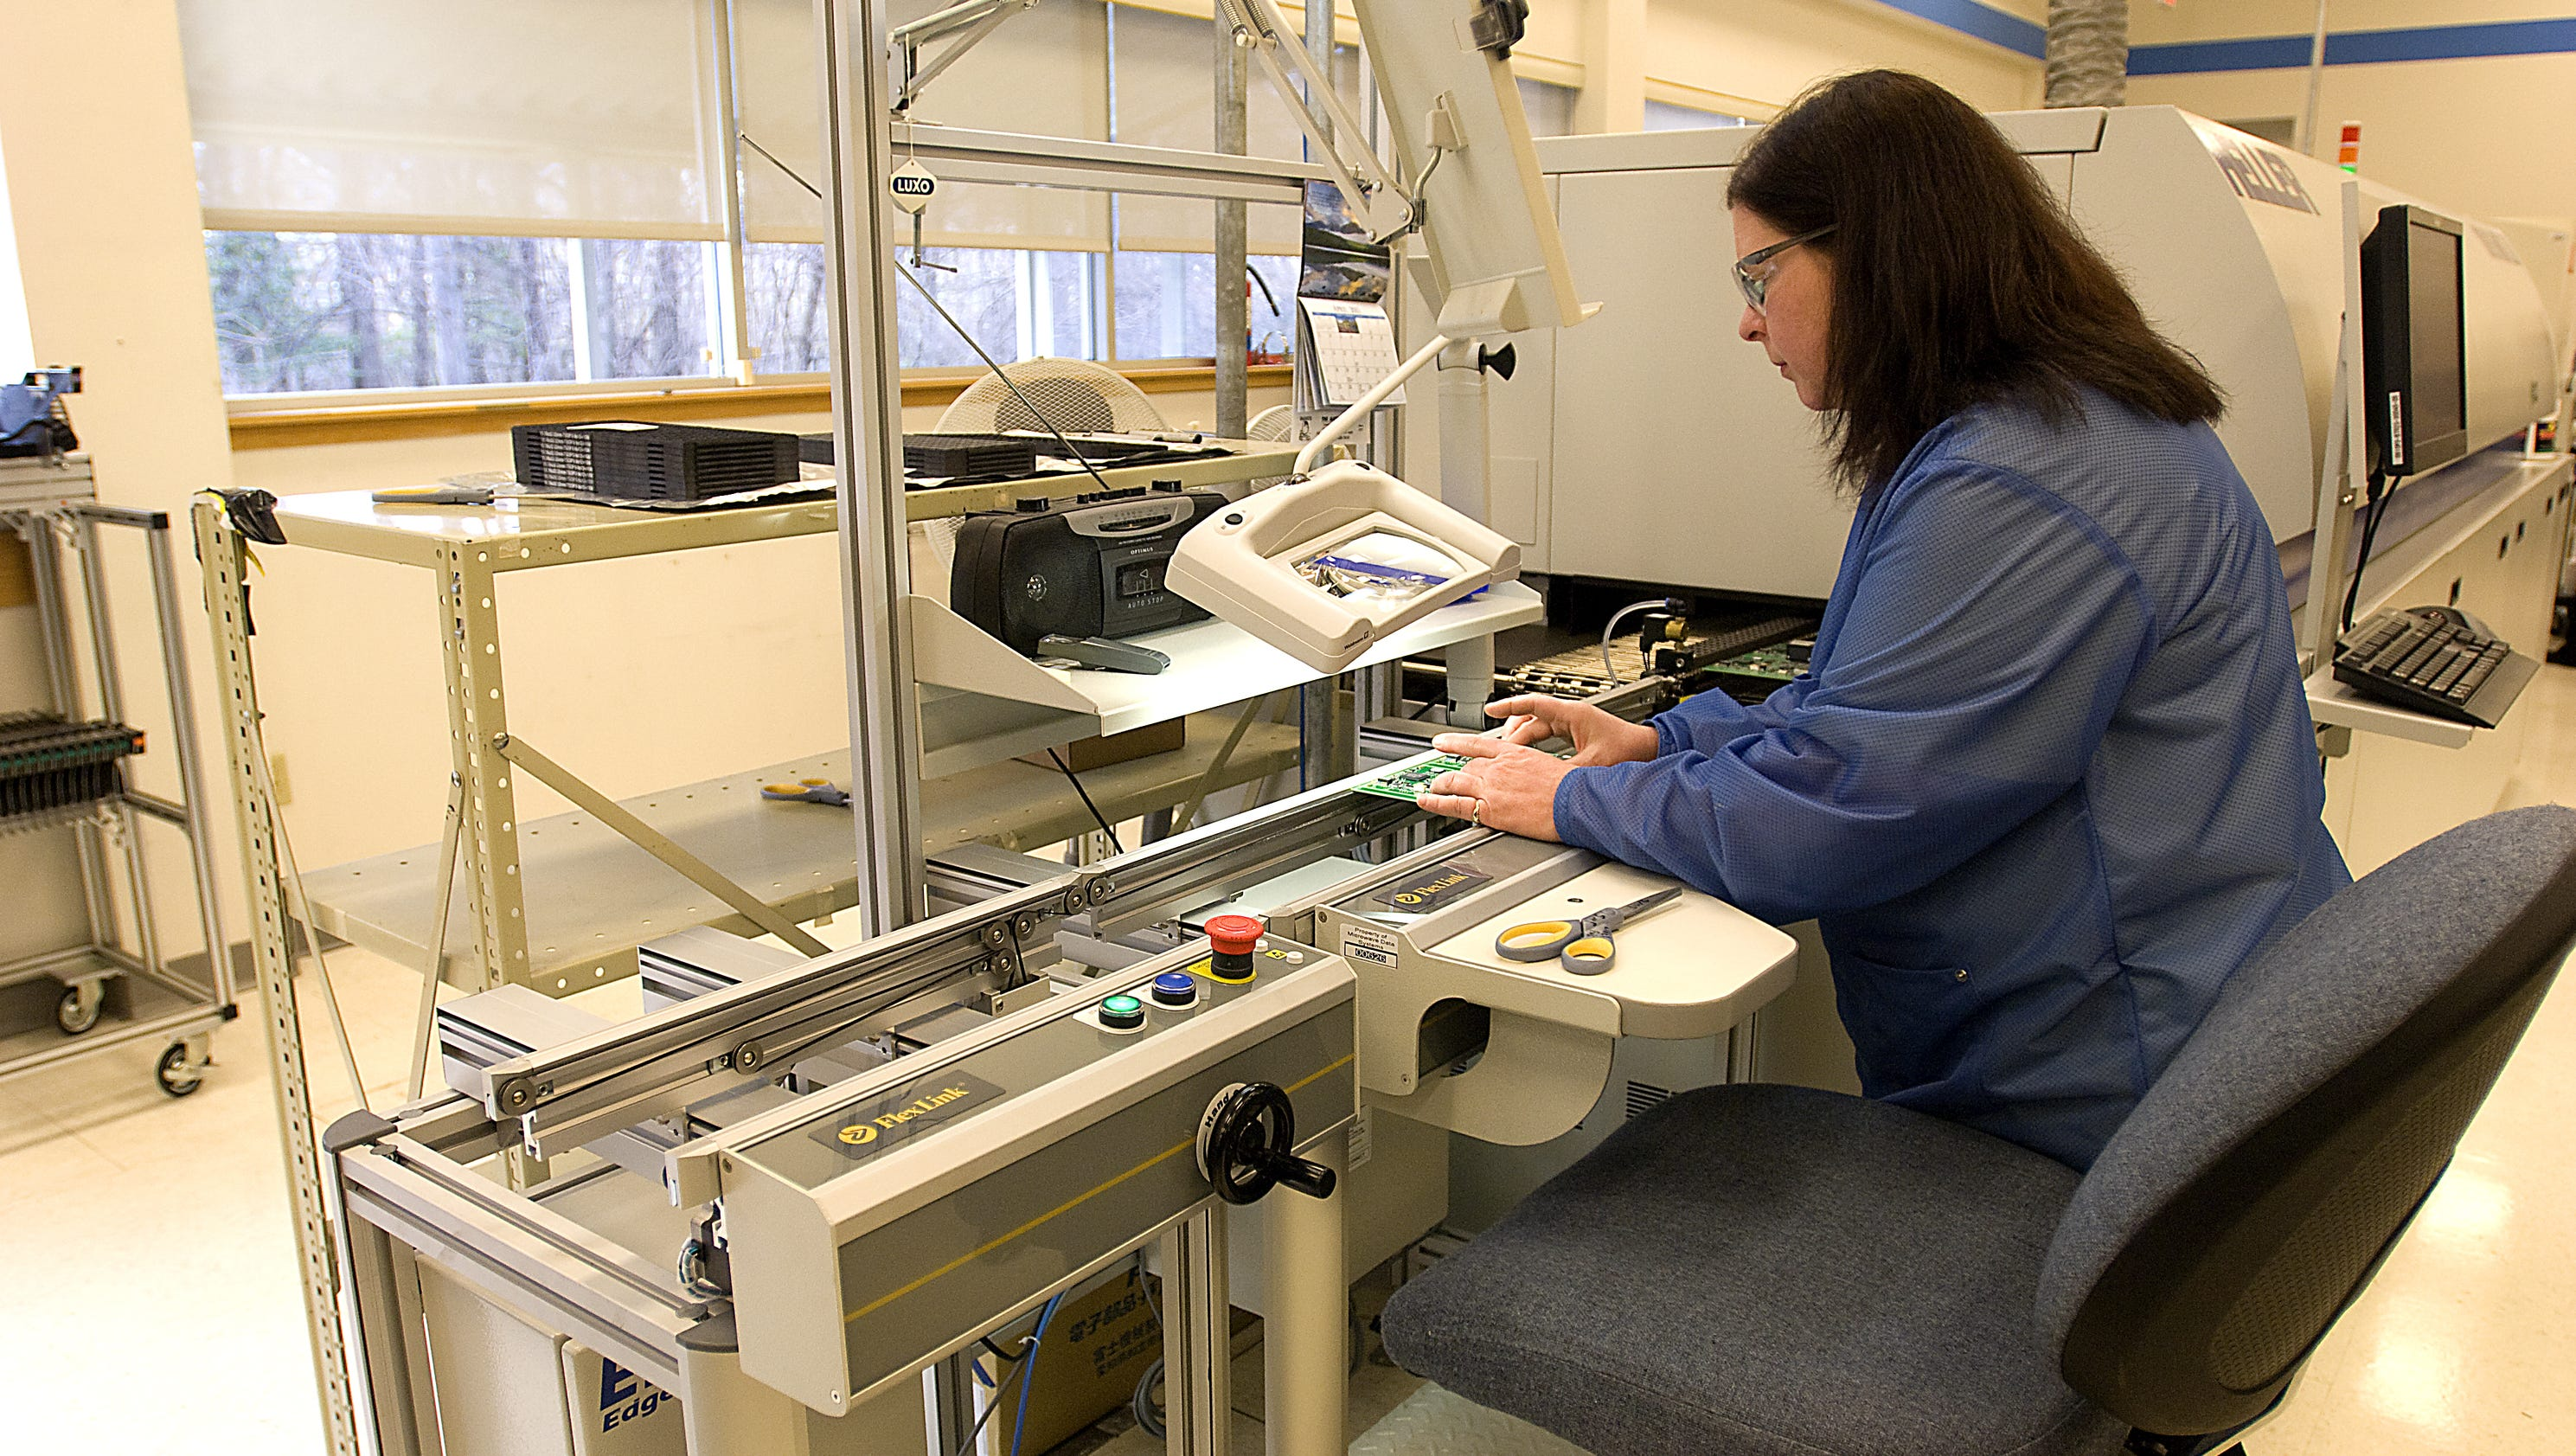 Ge Service Technician Ge Closing Rochester Facility Work Moving To Supplier In China